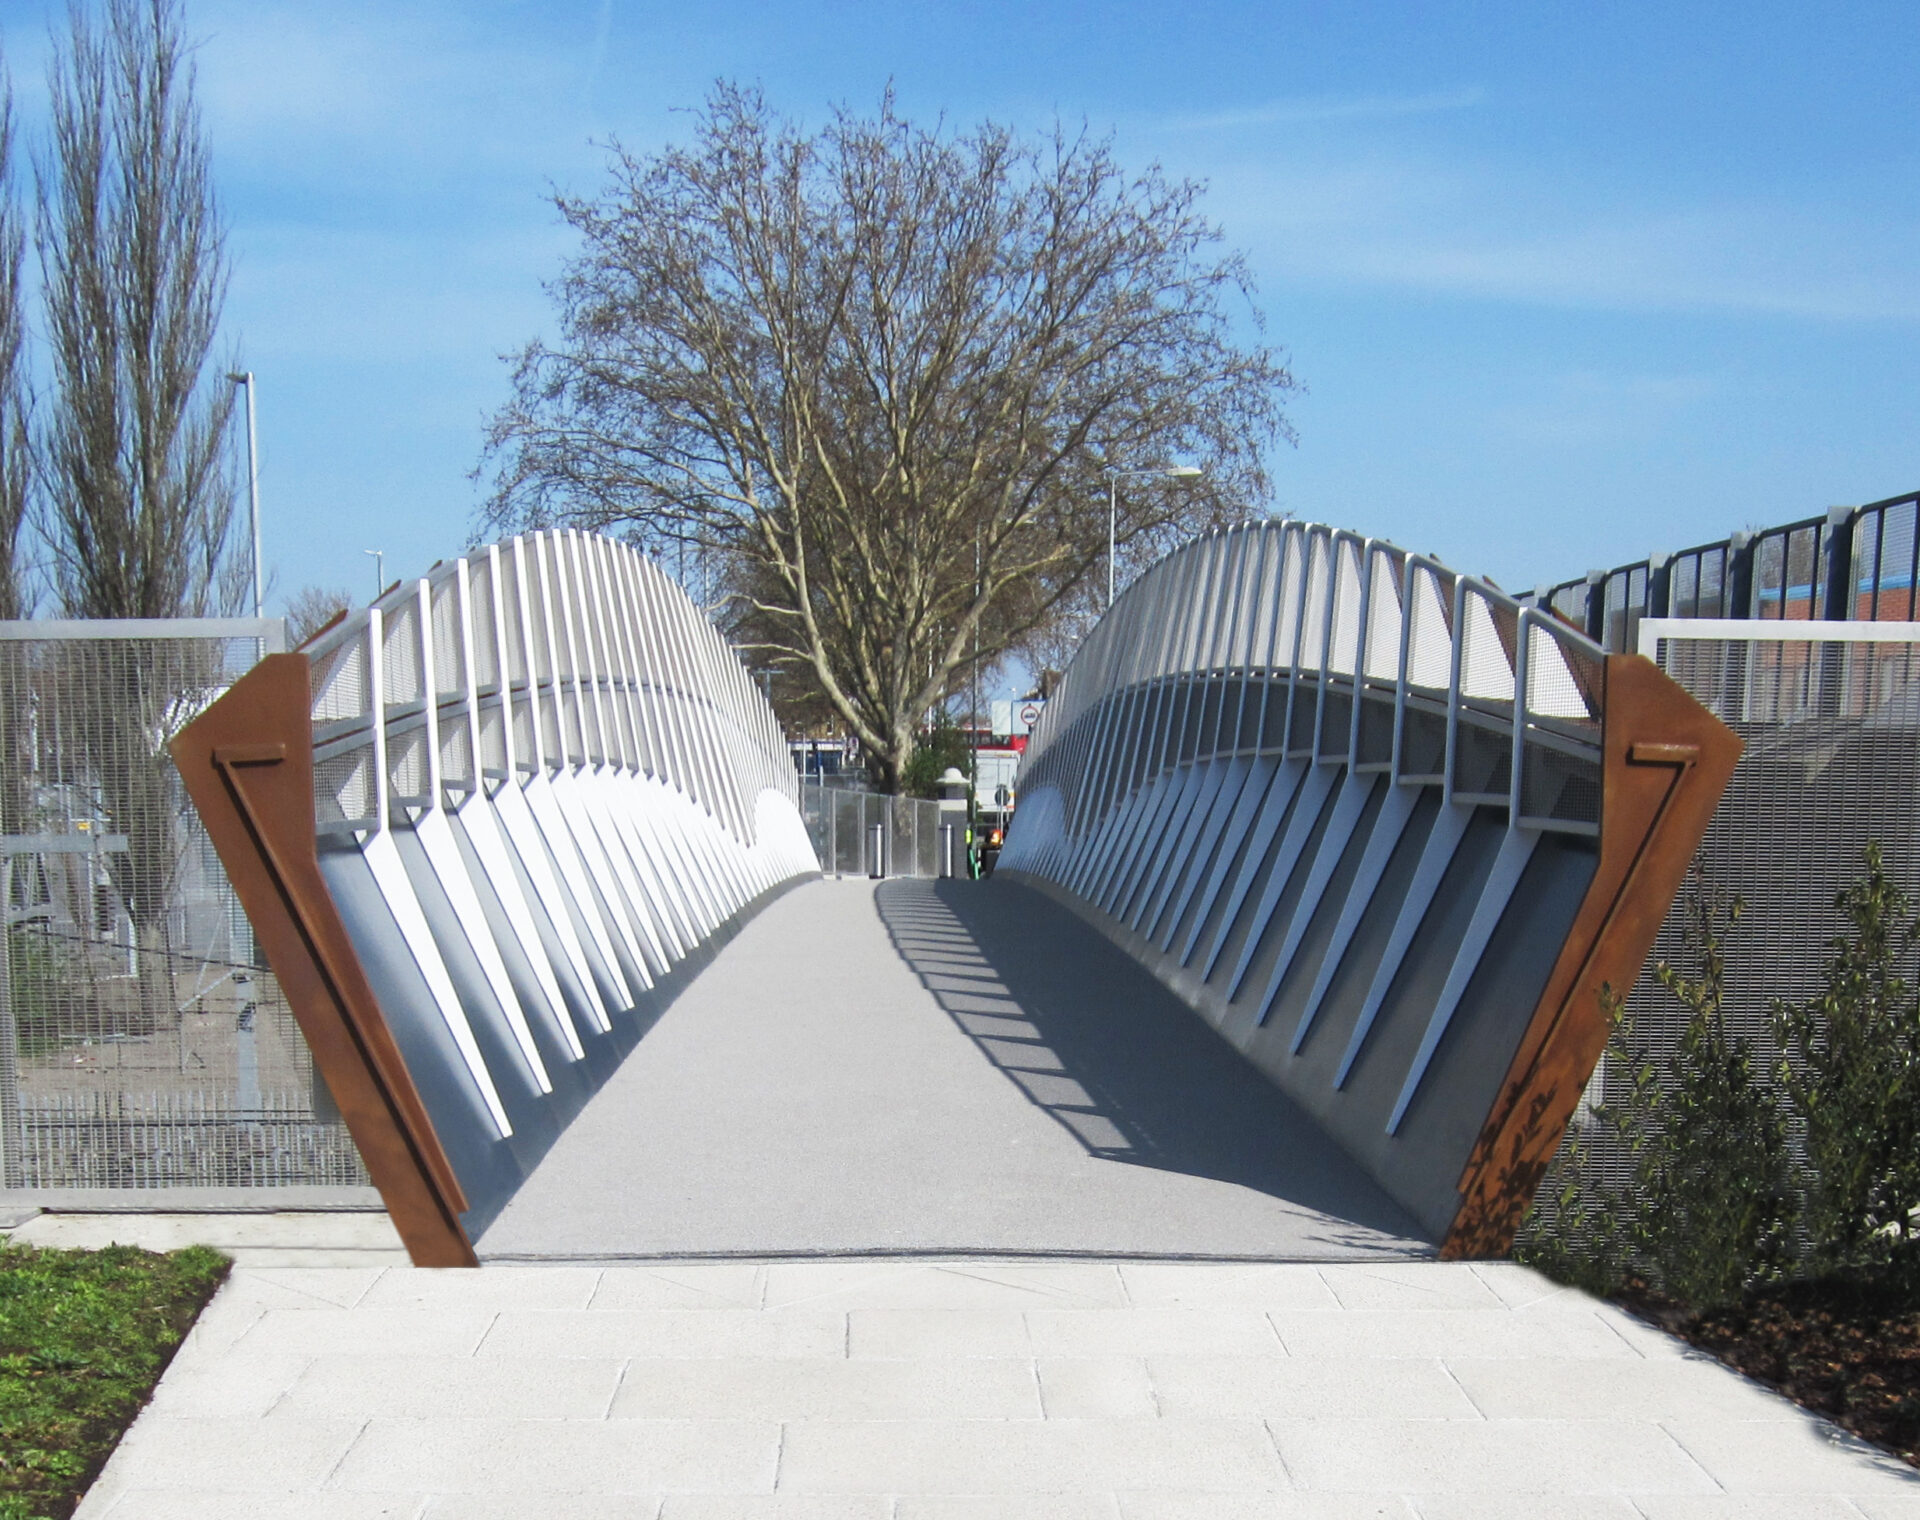 Stratford Olympic Park foot and cycle bridge in Athletes village